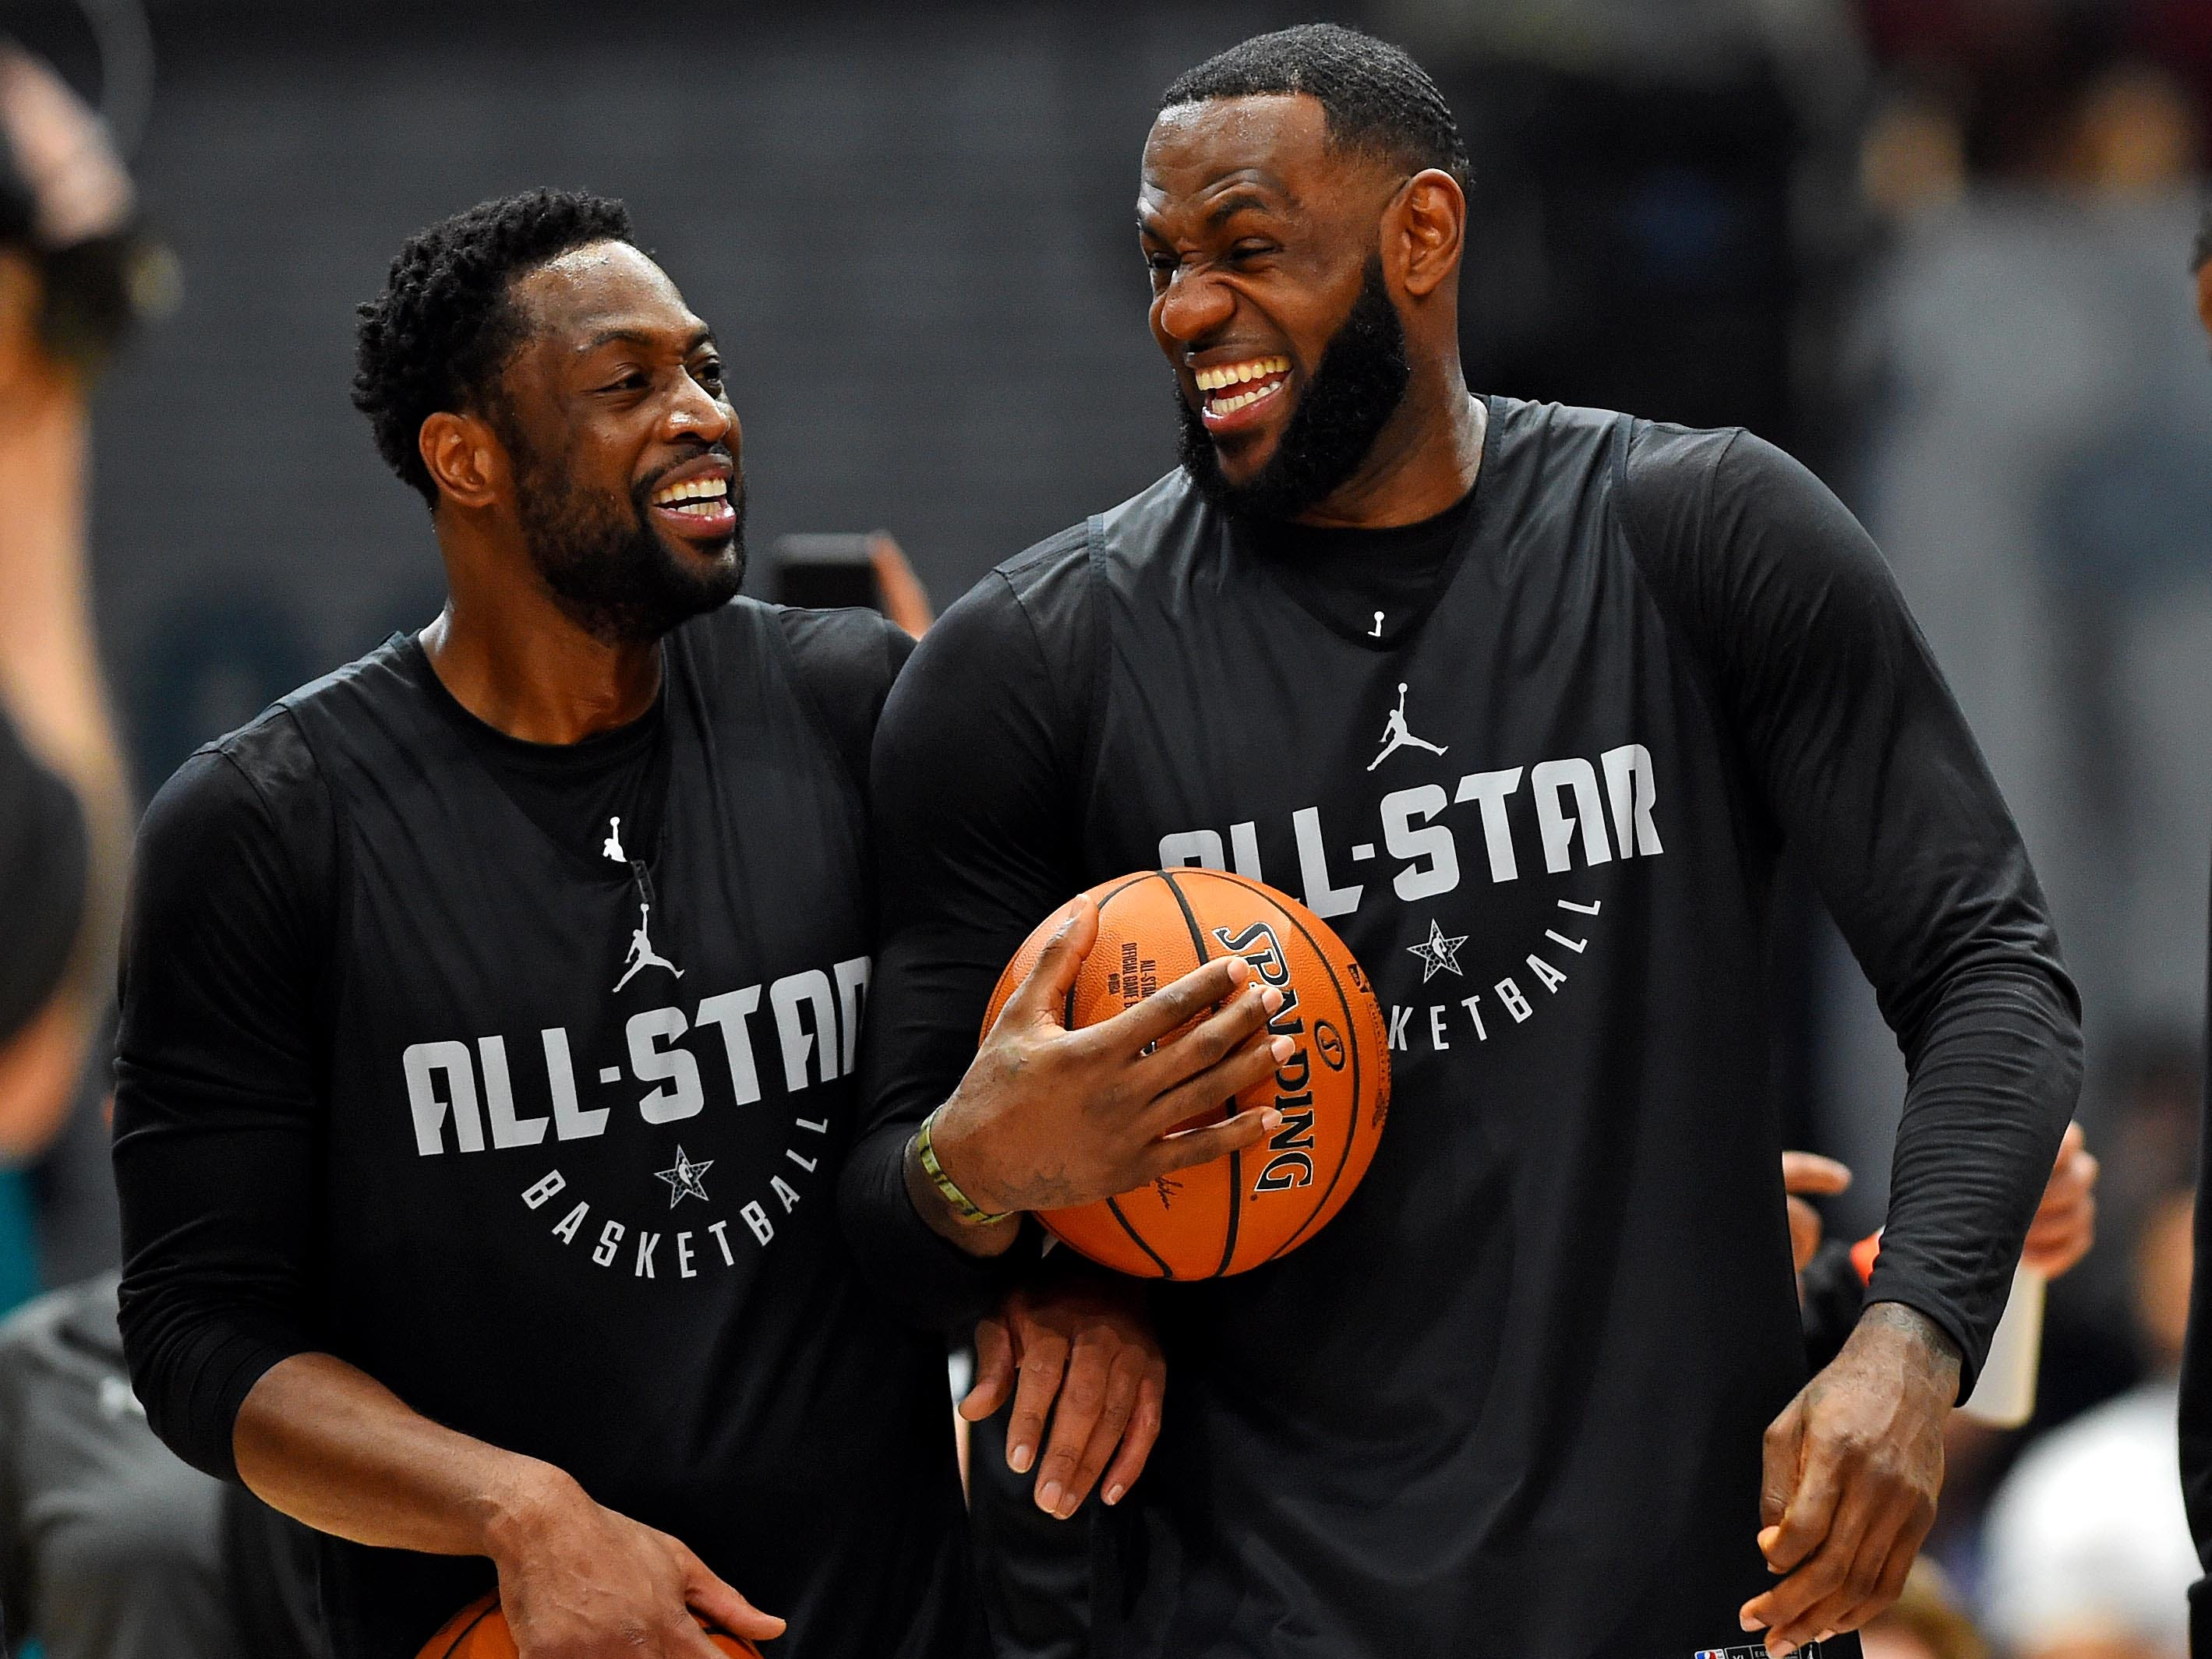 Lebron James and Dwayne Wade during NBA All-Star Game practice at the Bojangles Coliseum.